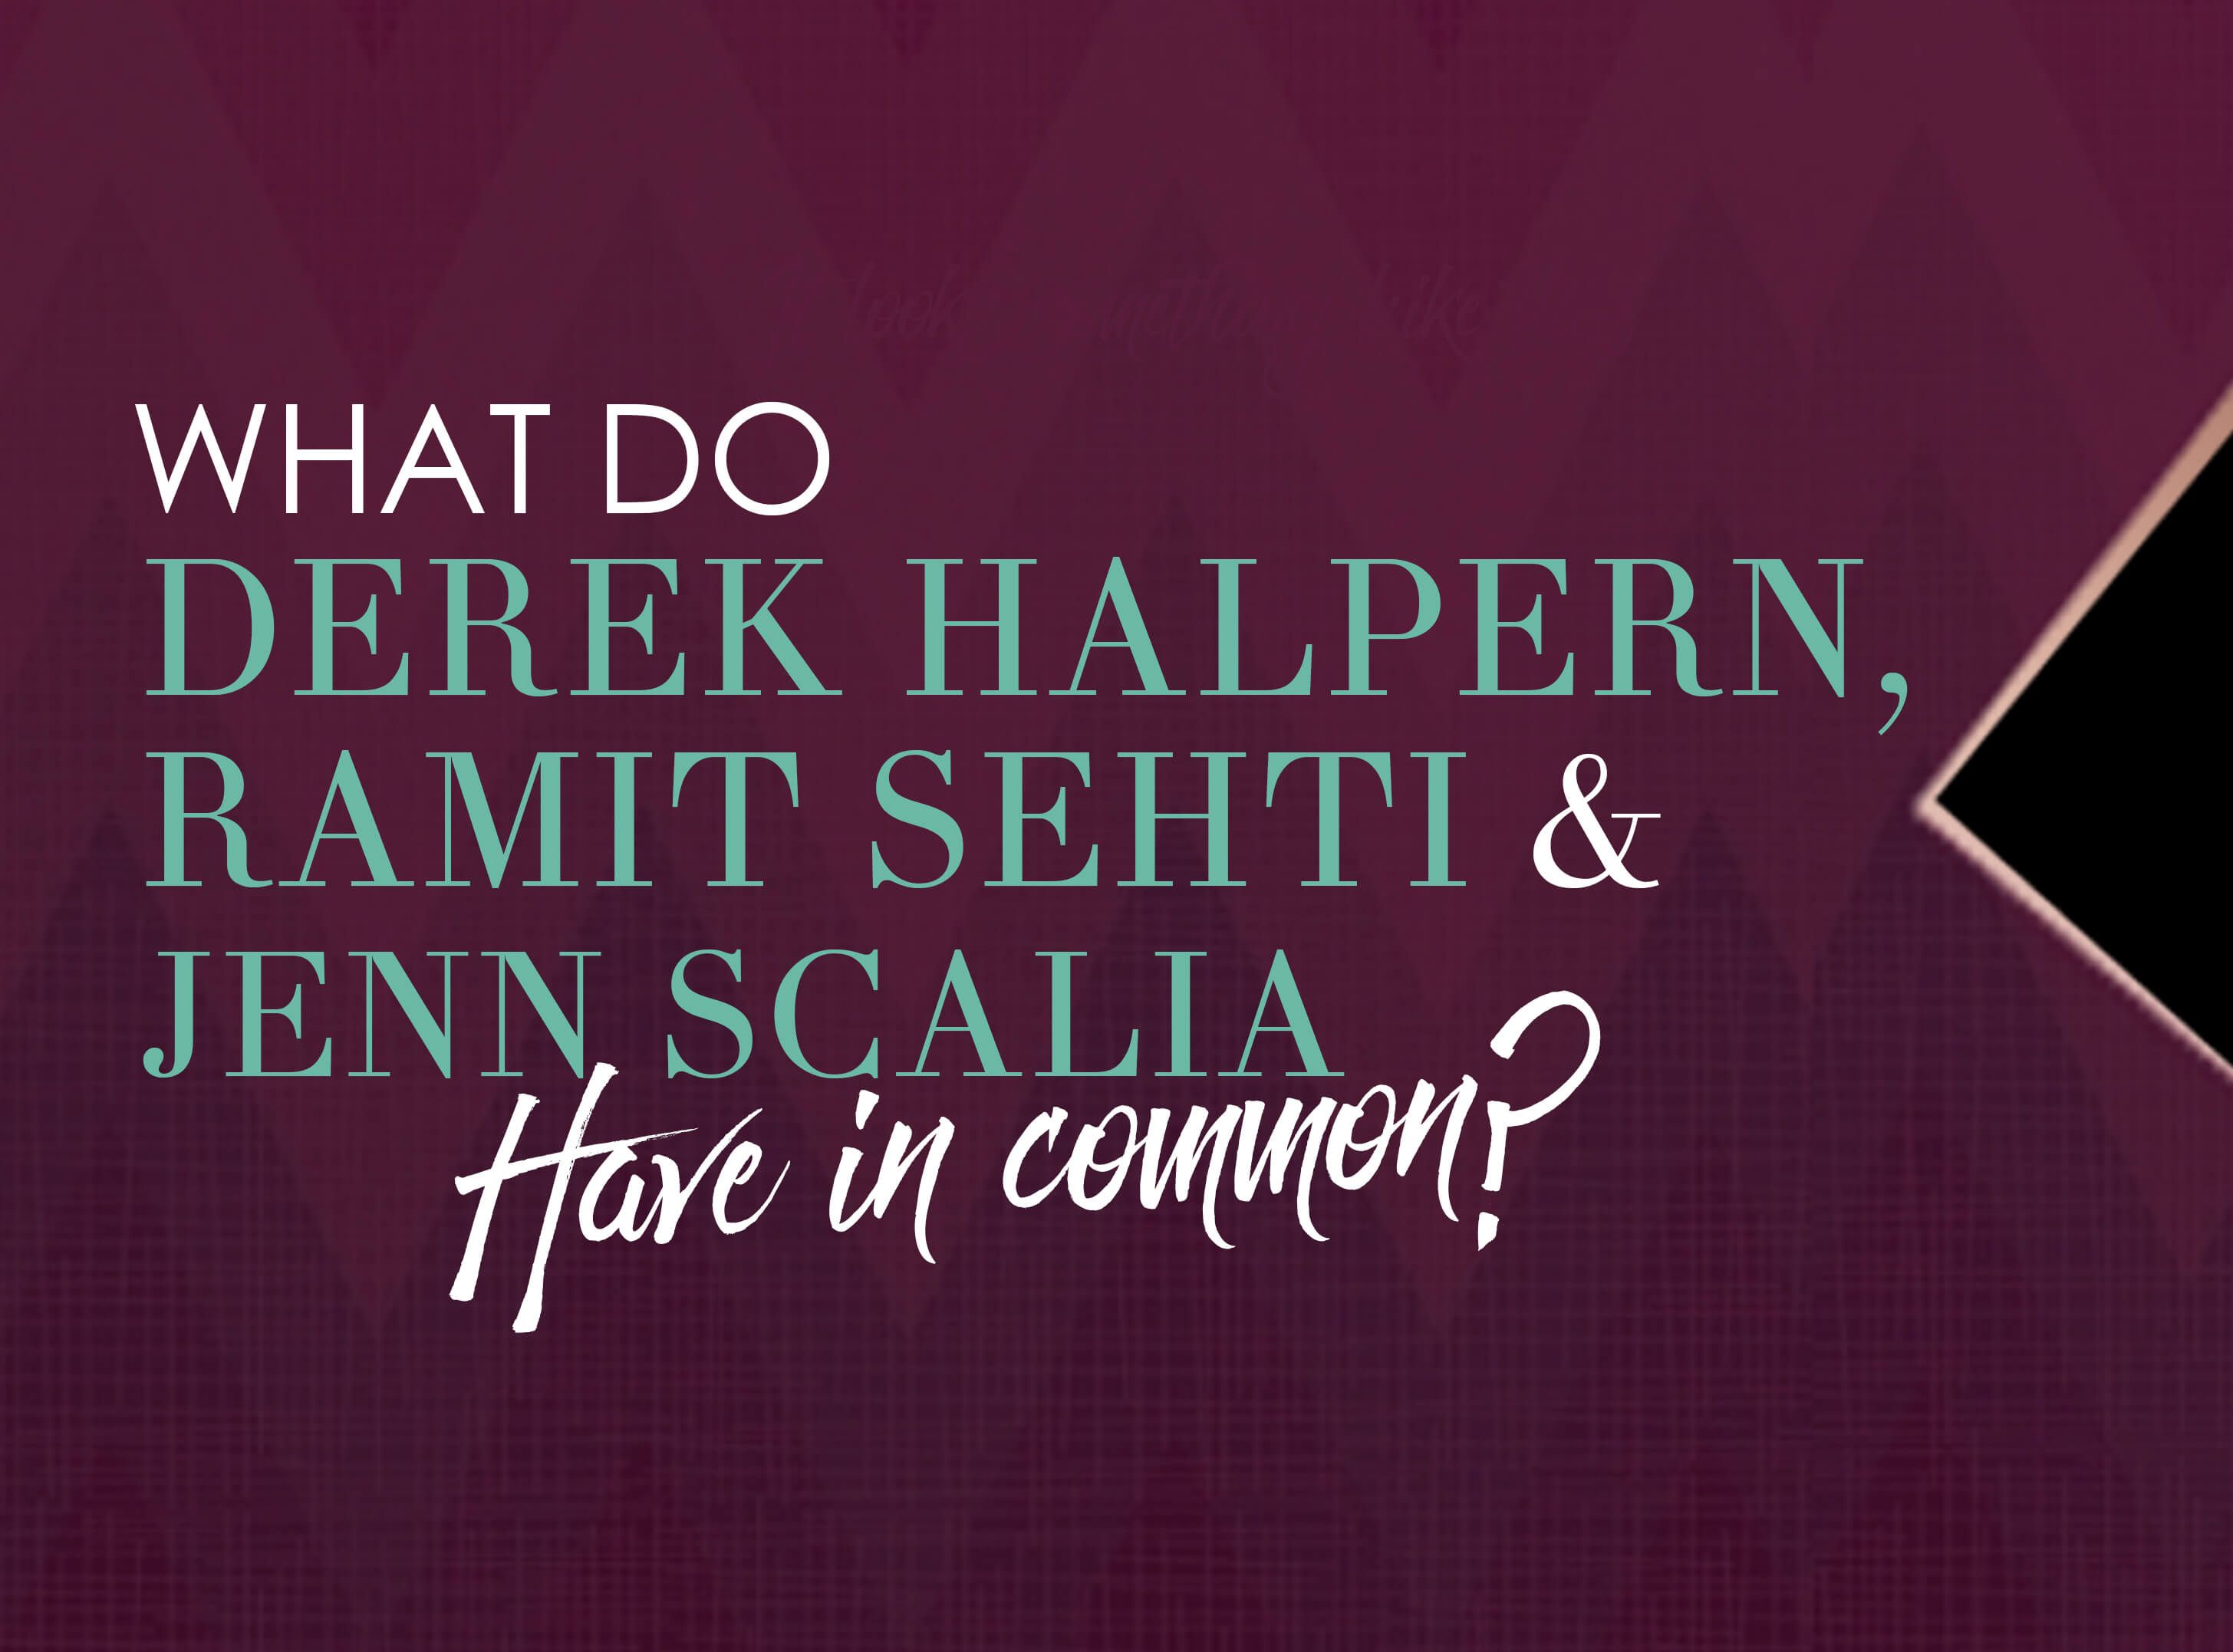 What do Derek Halpern, Ramit Sehti and Jenn Scalia have in common?